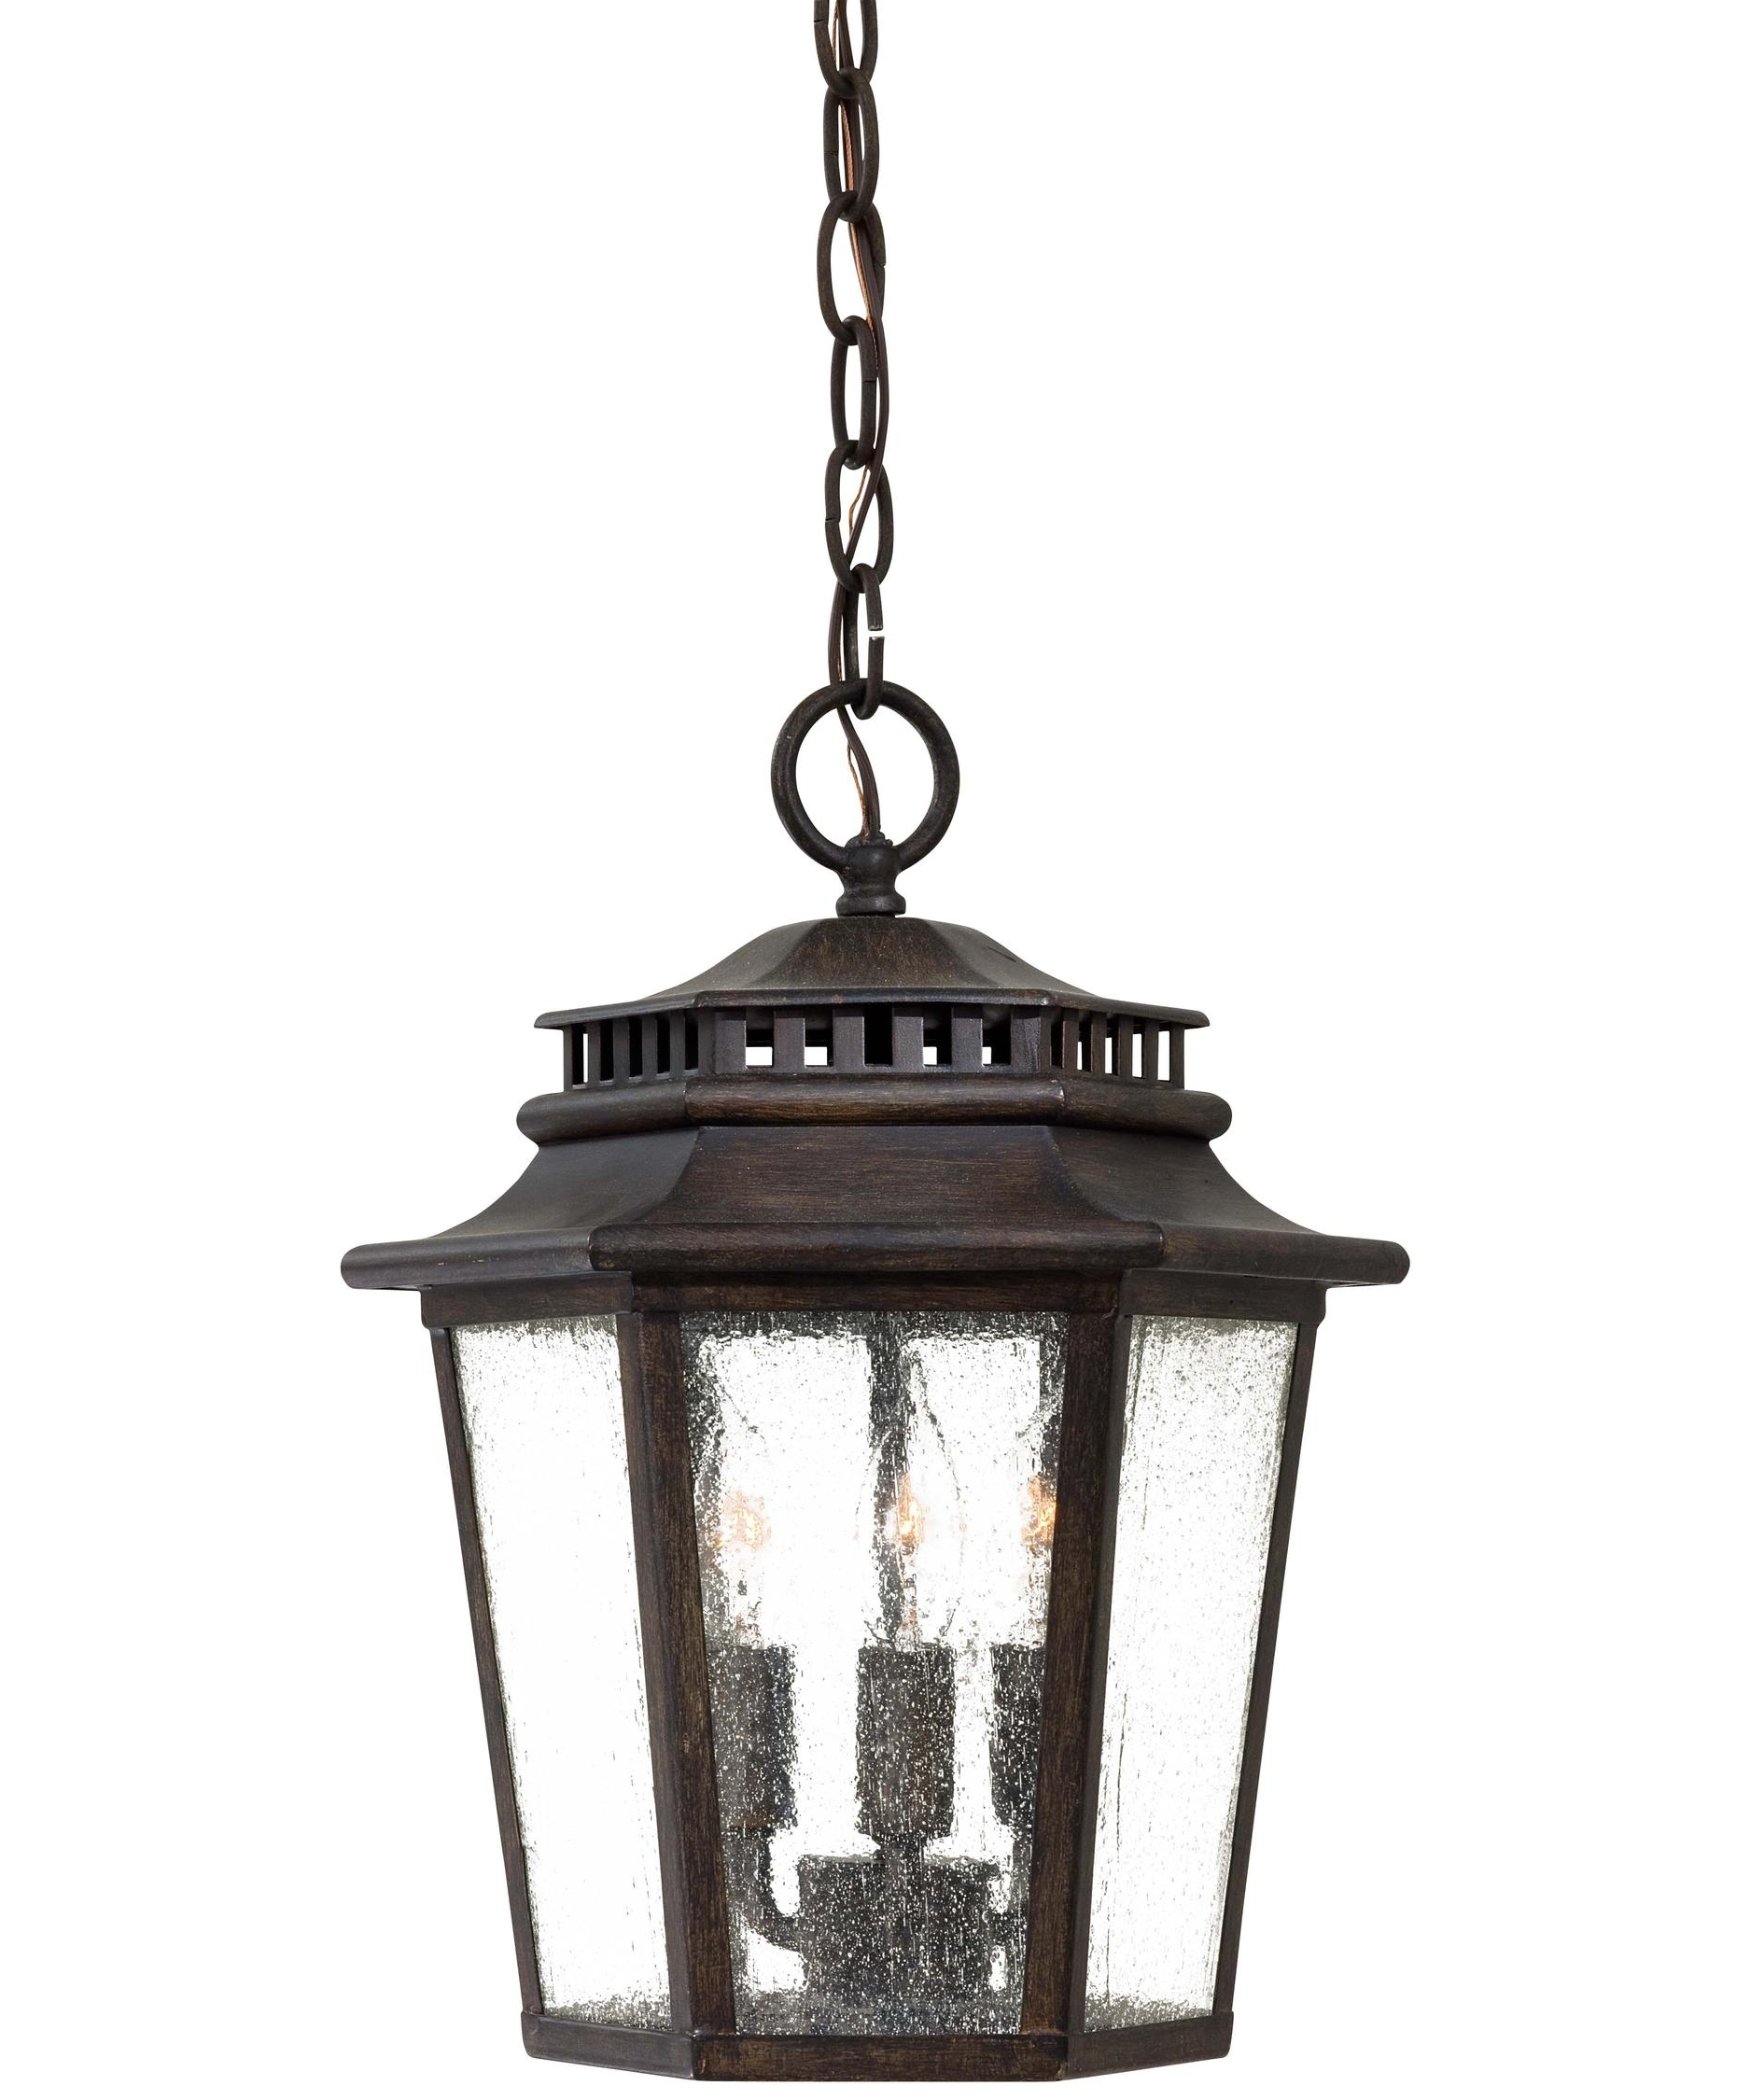 Led Outdoor Hanging Lanterns With Regard To Latest Lighting : Led Outside Lights External Ceiling Light Outdoor Hanging (View 11 of 20)